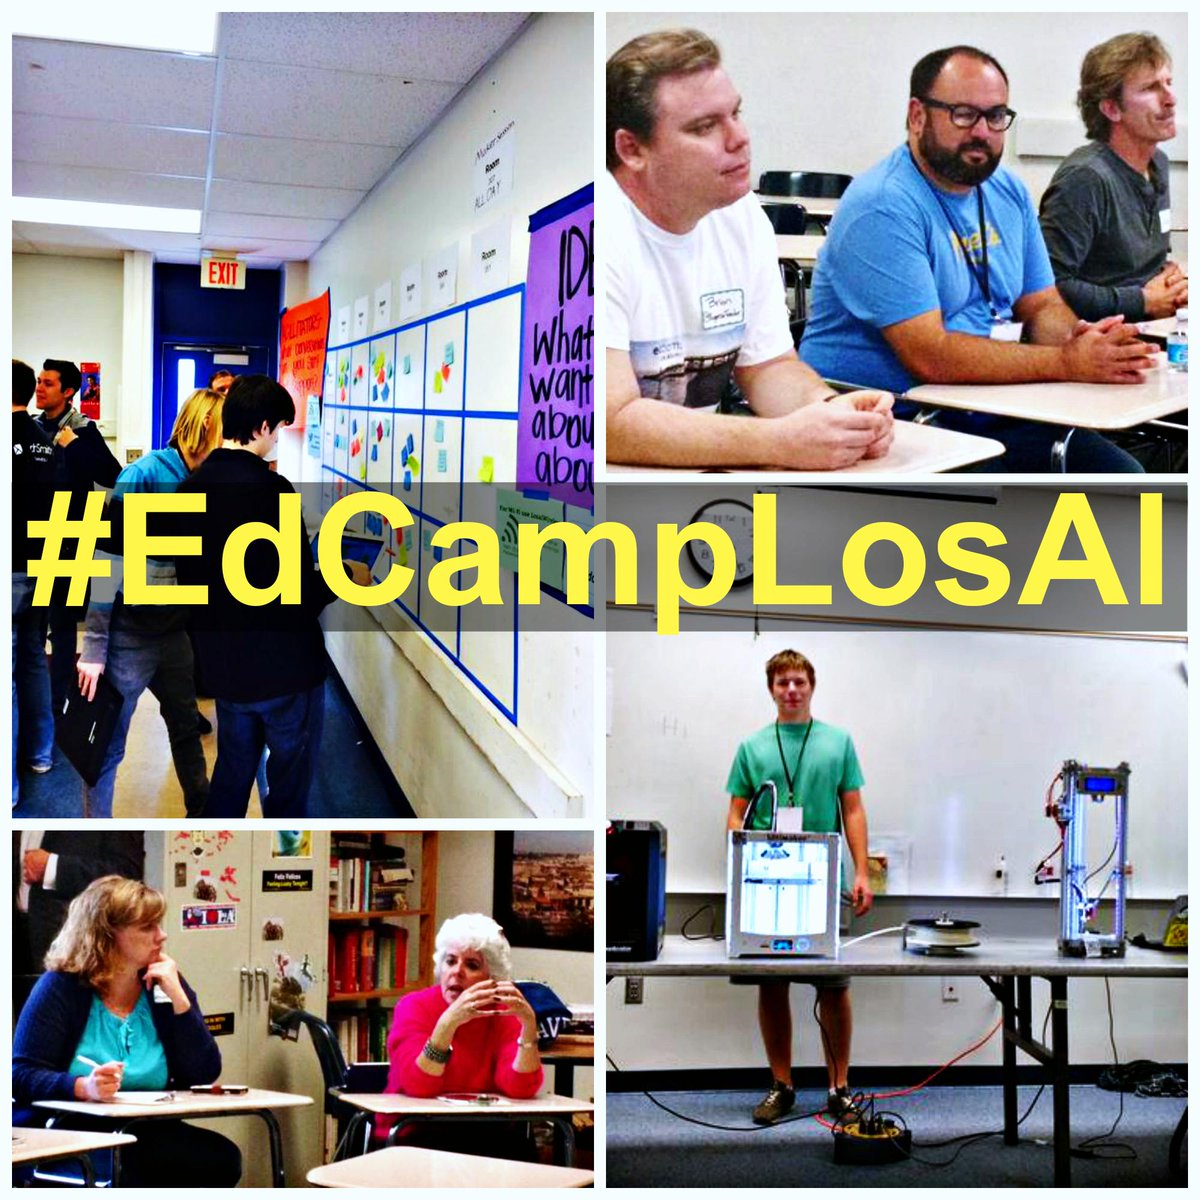 #EdCampLosAl was a huge success!!! Thanks to @shareTED, @dabennett7, and @LosAlamitosUSD for making it possible :) http://t.co/OXSLhnTgmz